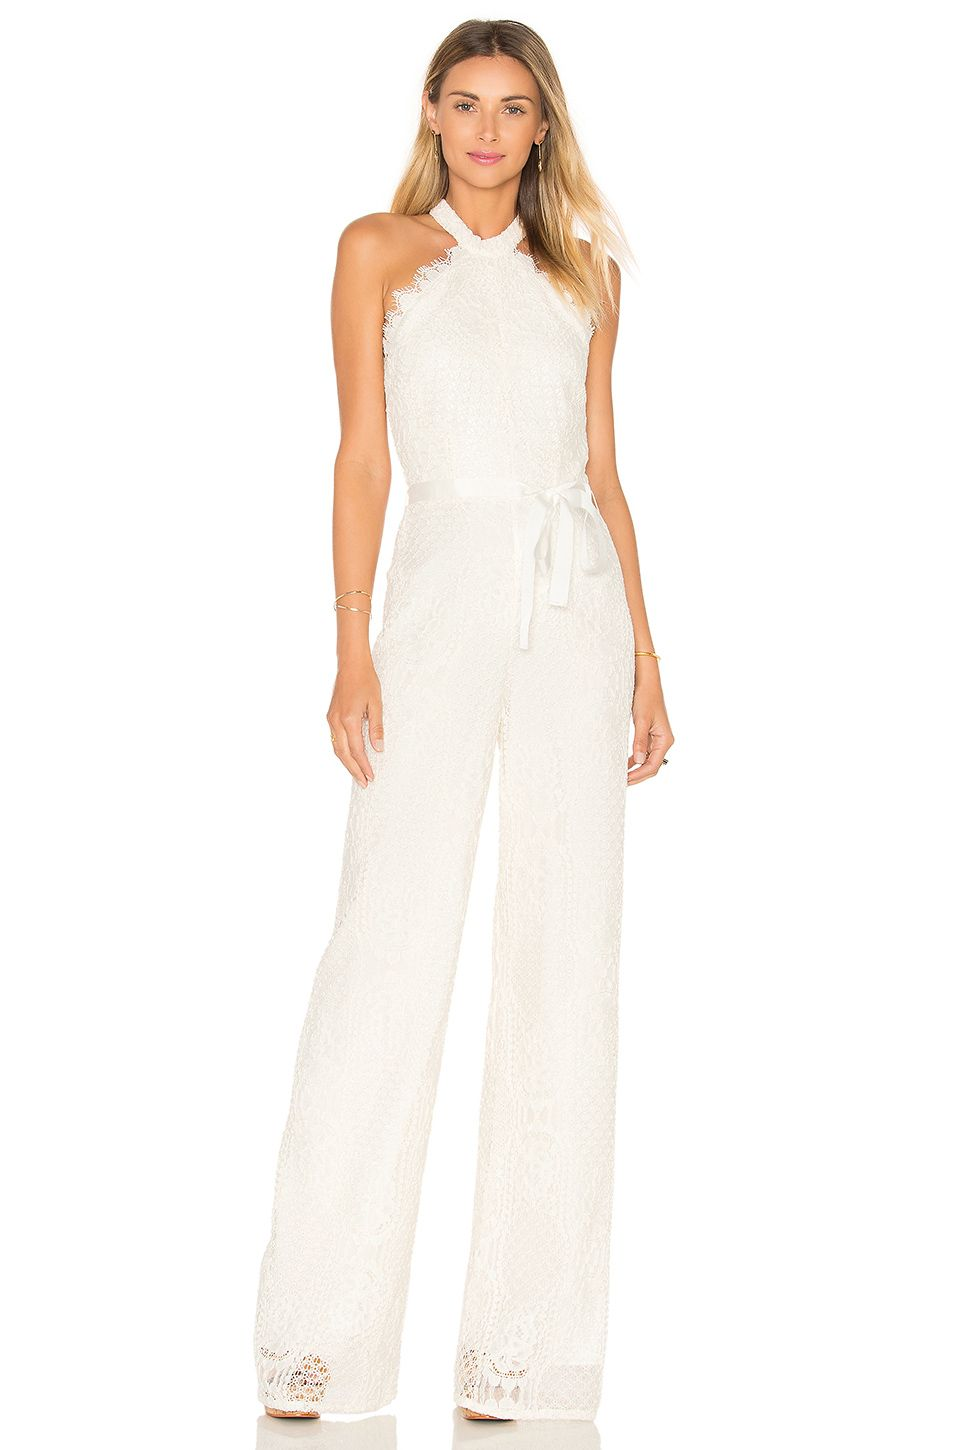 273d9ecf57 White Strapless Jumpsuit for Our Anniversary. ALEXIS MAYLINA JUMPSUIT.   alexis  cloth  dress  top  shirt  pant  coat  jecket  jacket  shorts  ski